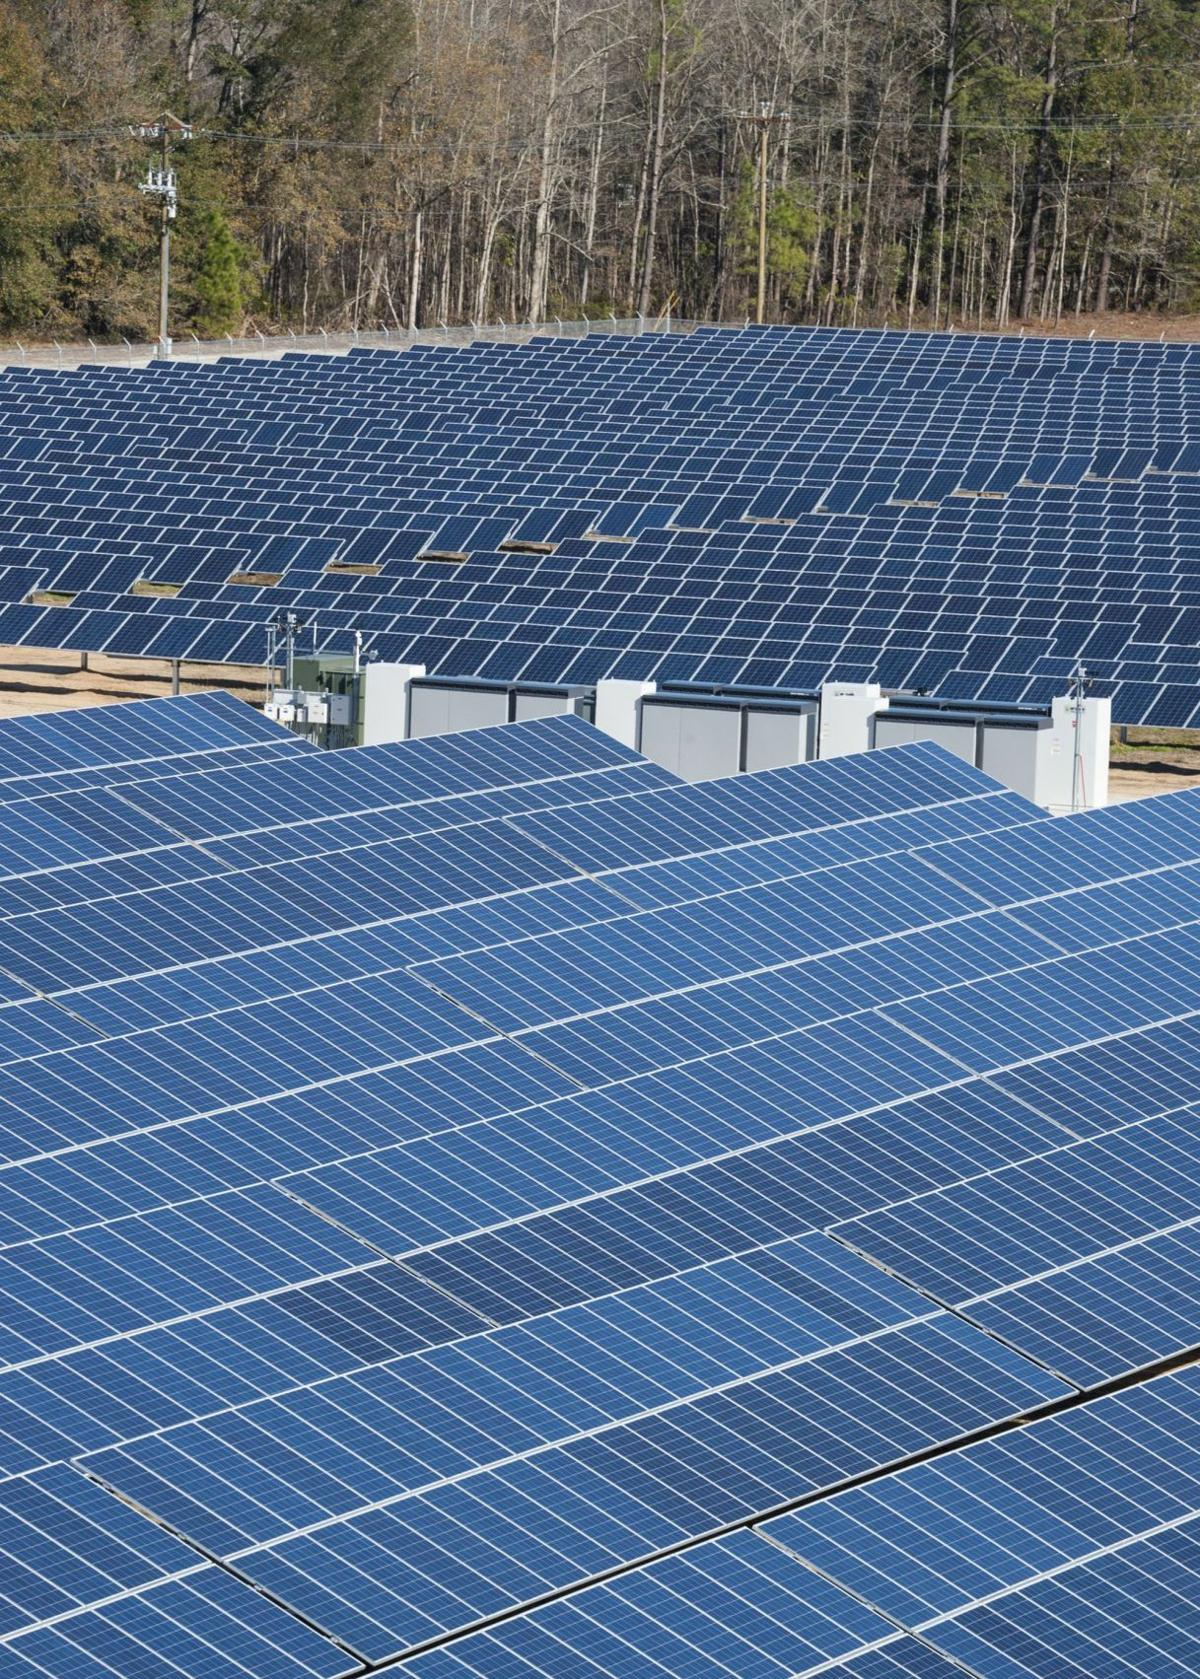 Santee Cooper Board Approves New Solar Energy Incentives